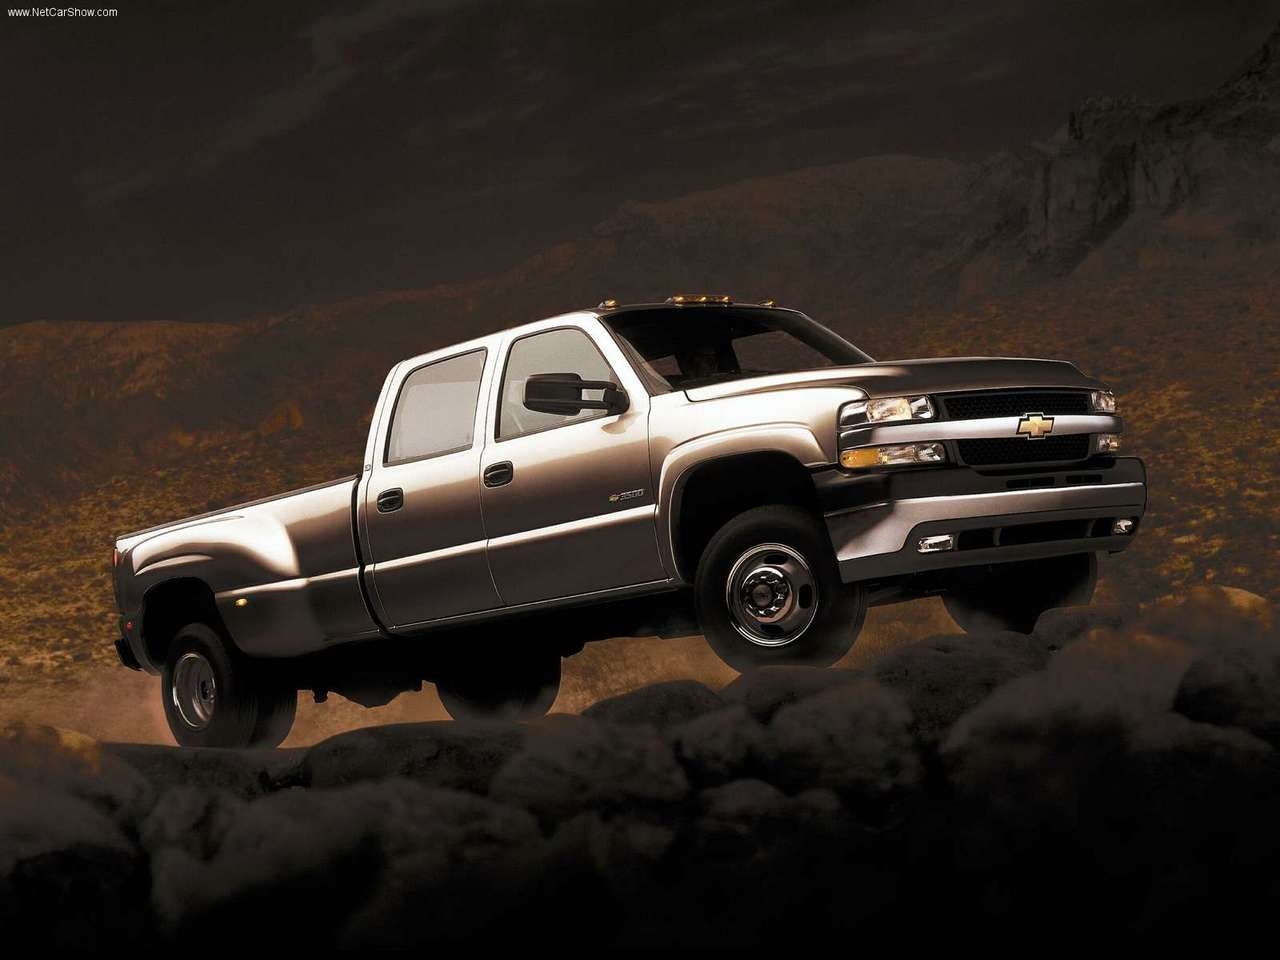 Chevy Truck Wallpapers - Top Free Chevy